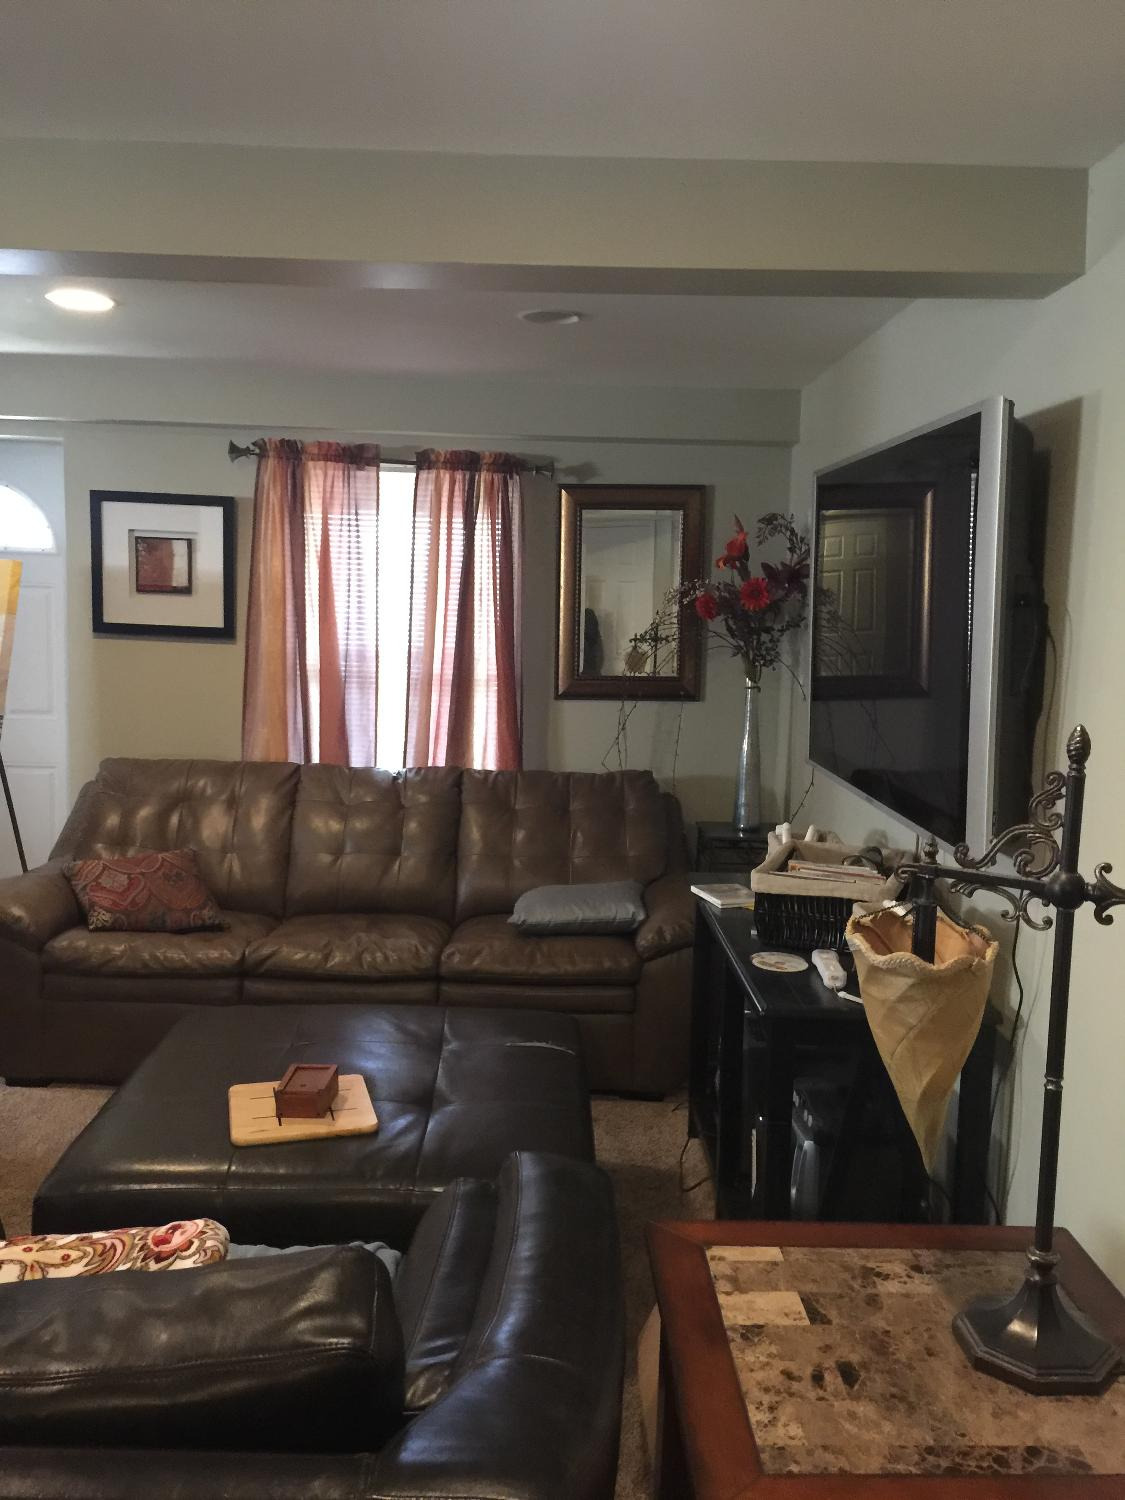 Best Ottoman Large Dark Brown For Sale In Florence Kentucky For 2018